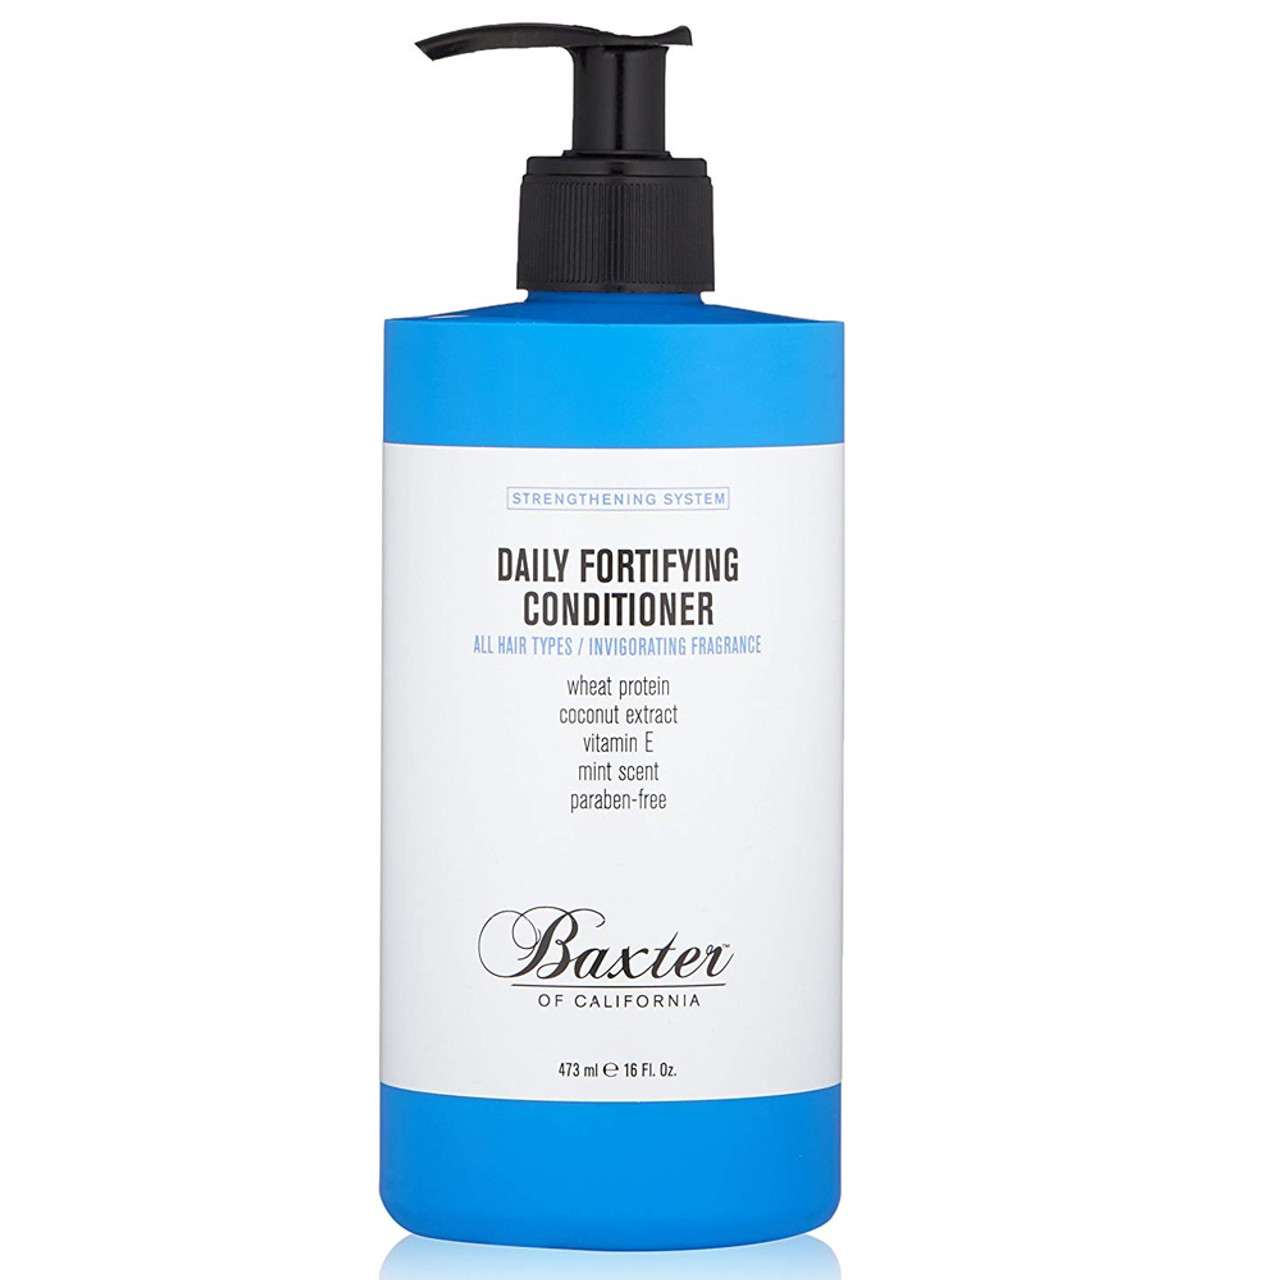 Baxter of California Daily Fortifying Conditioner 8 oz